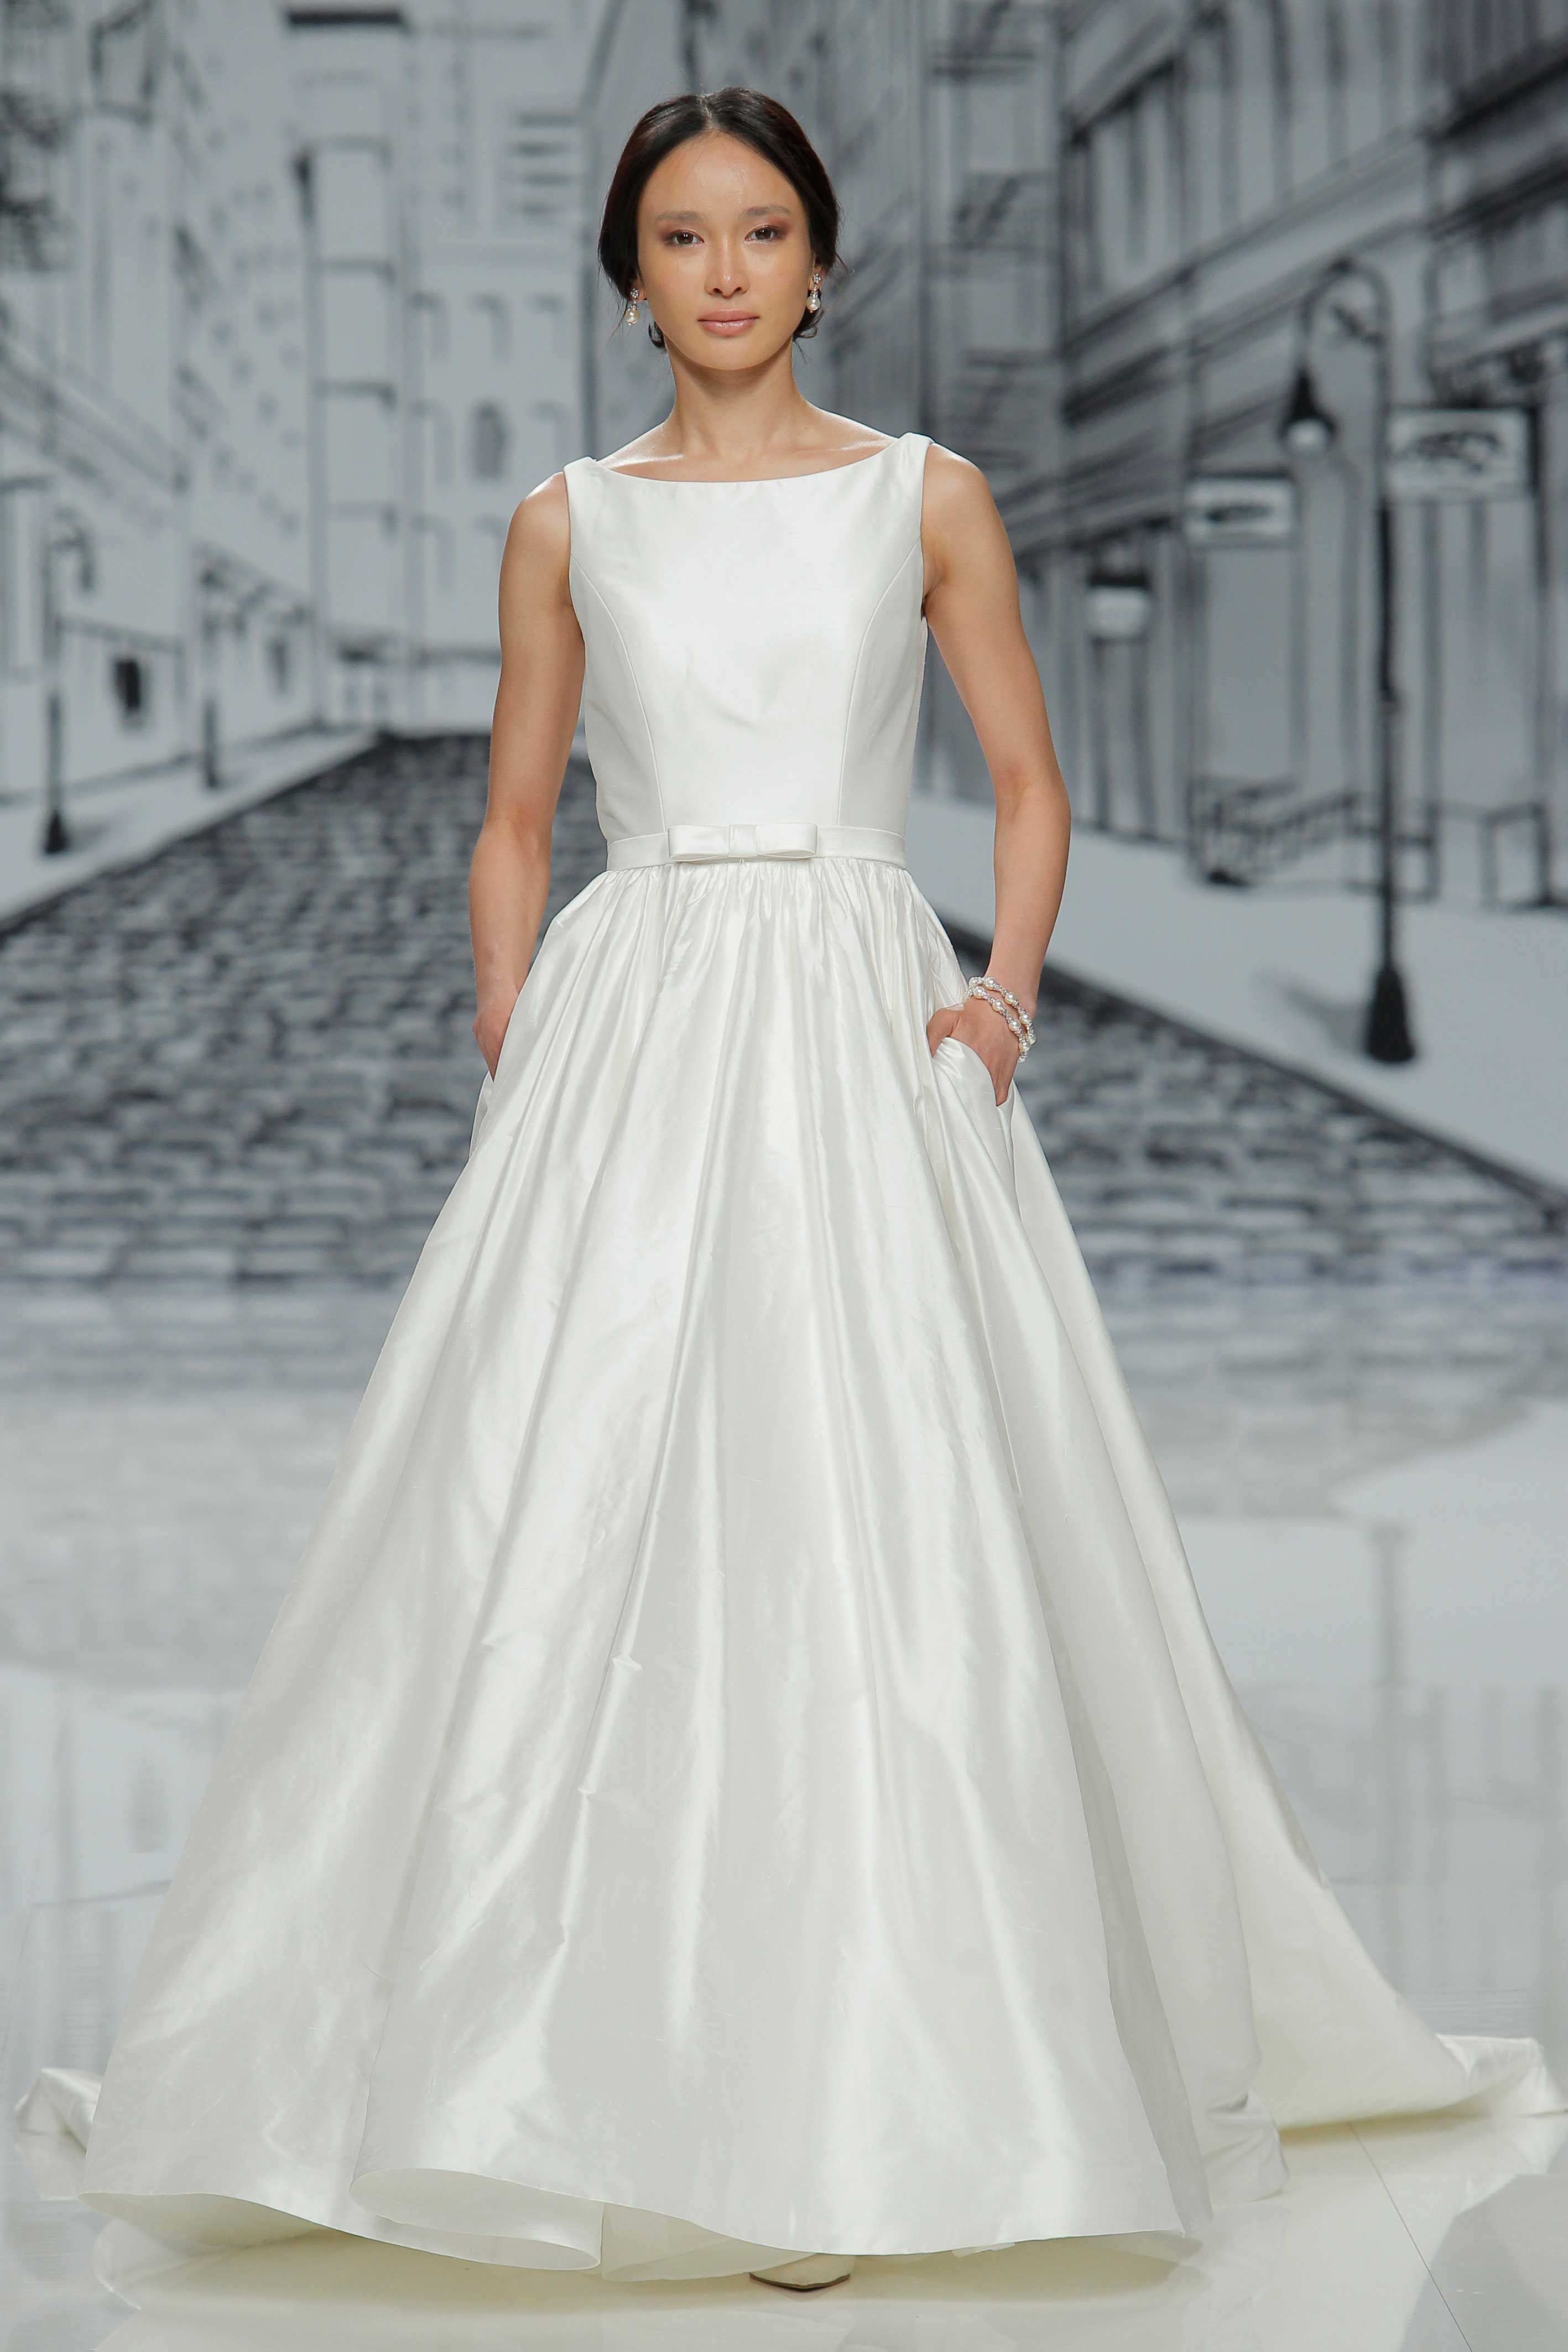 Designer Wedding Gowns In Simple Styles